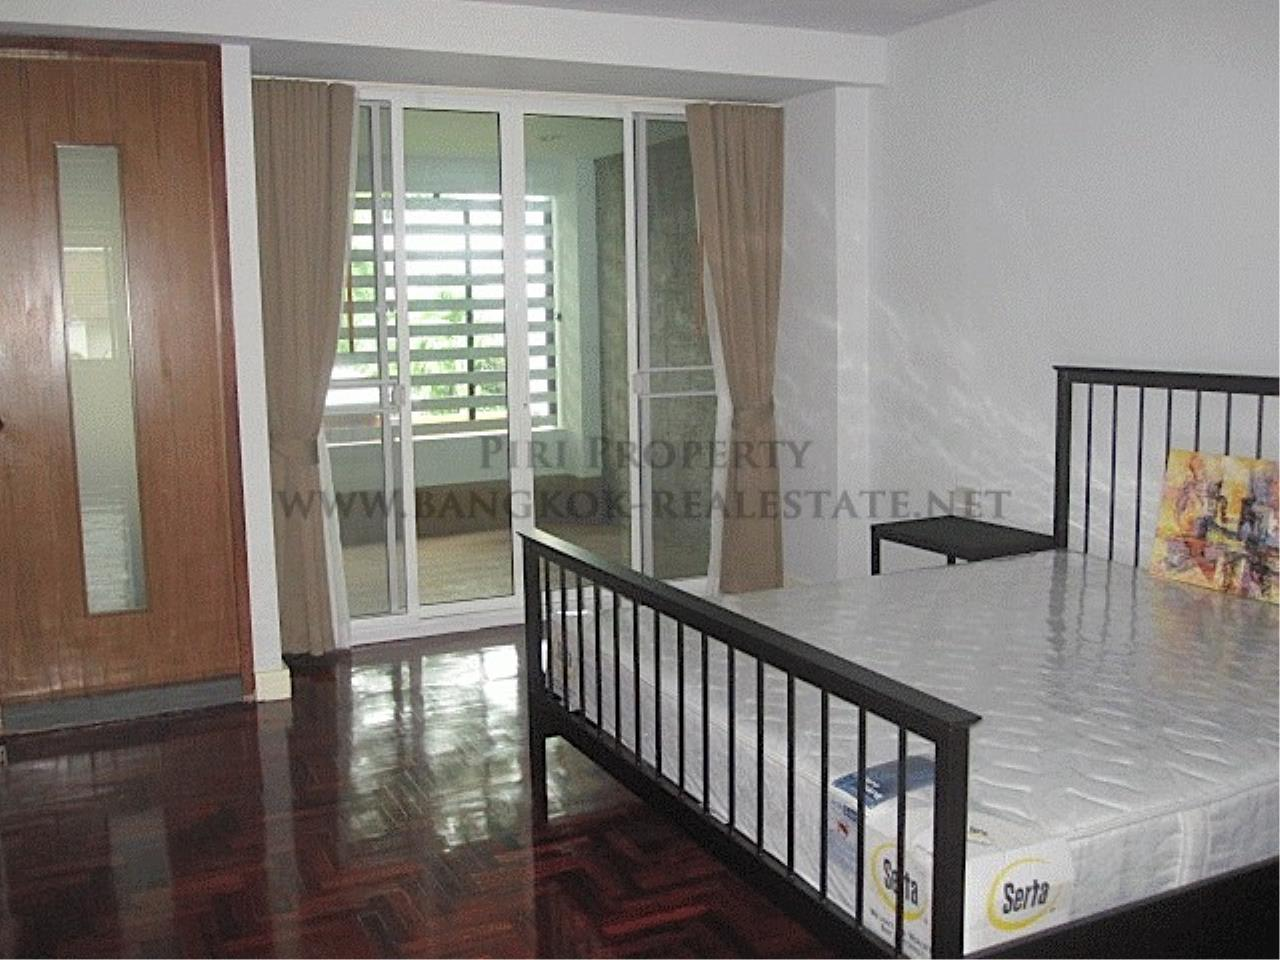 Piri Property Agency's Very Spacious One Bedroom Unit 2